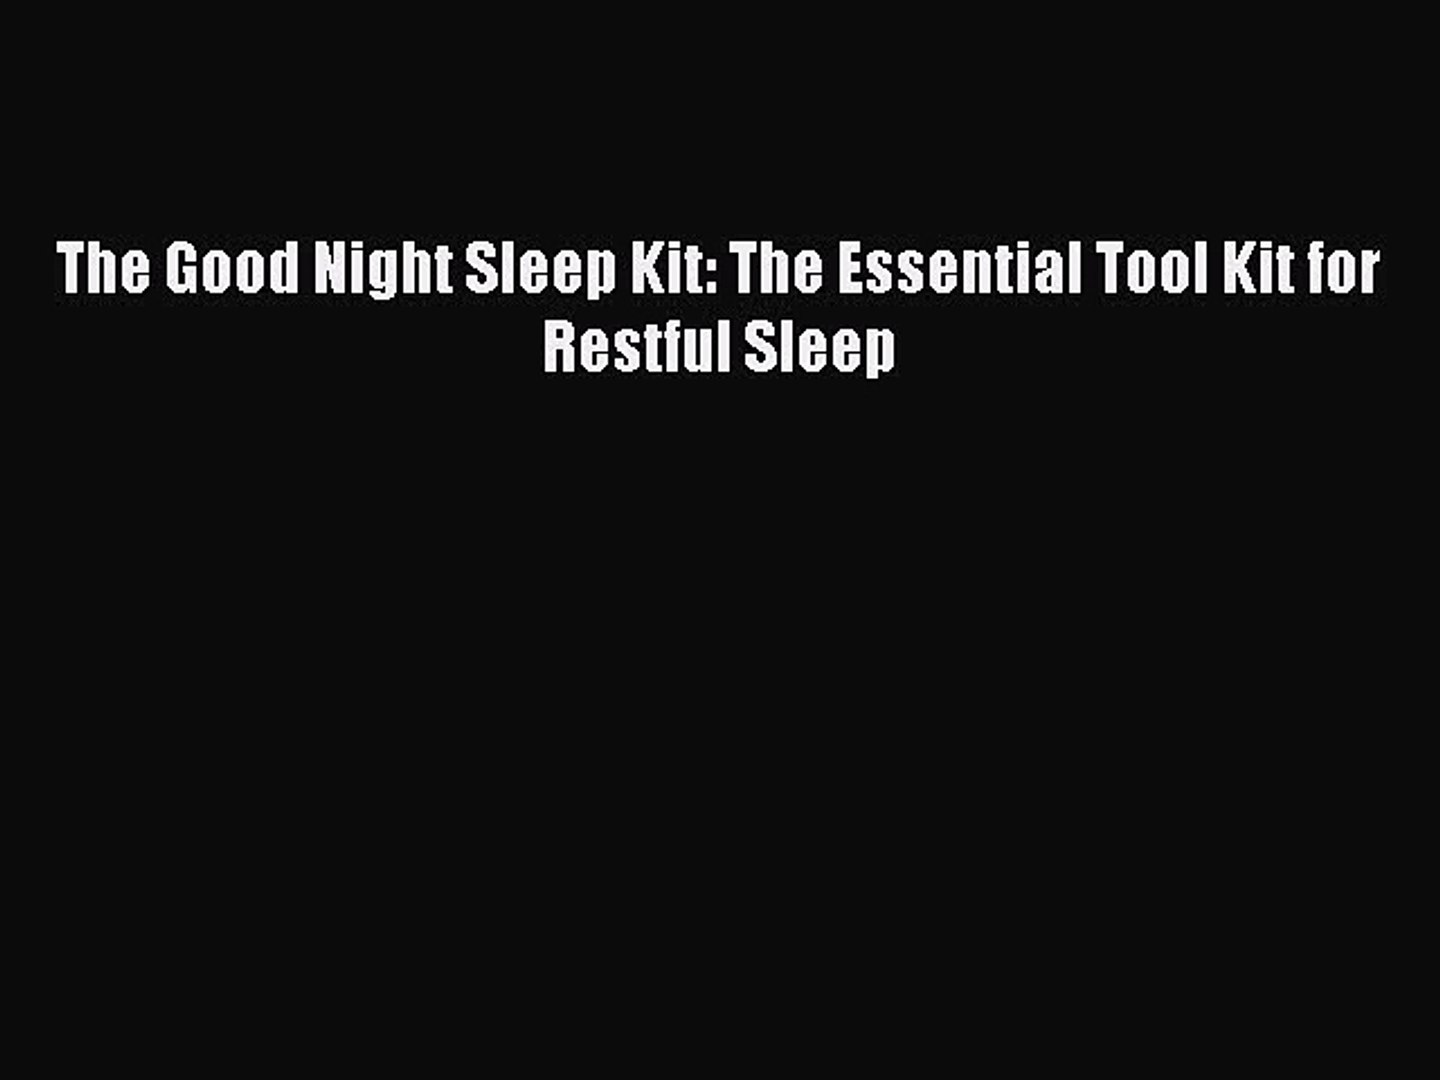 Read The Good Night Sleep Kit: The Essential Tool Kit for Restful Sleep Ebook Free